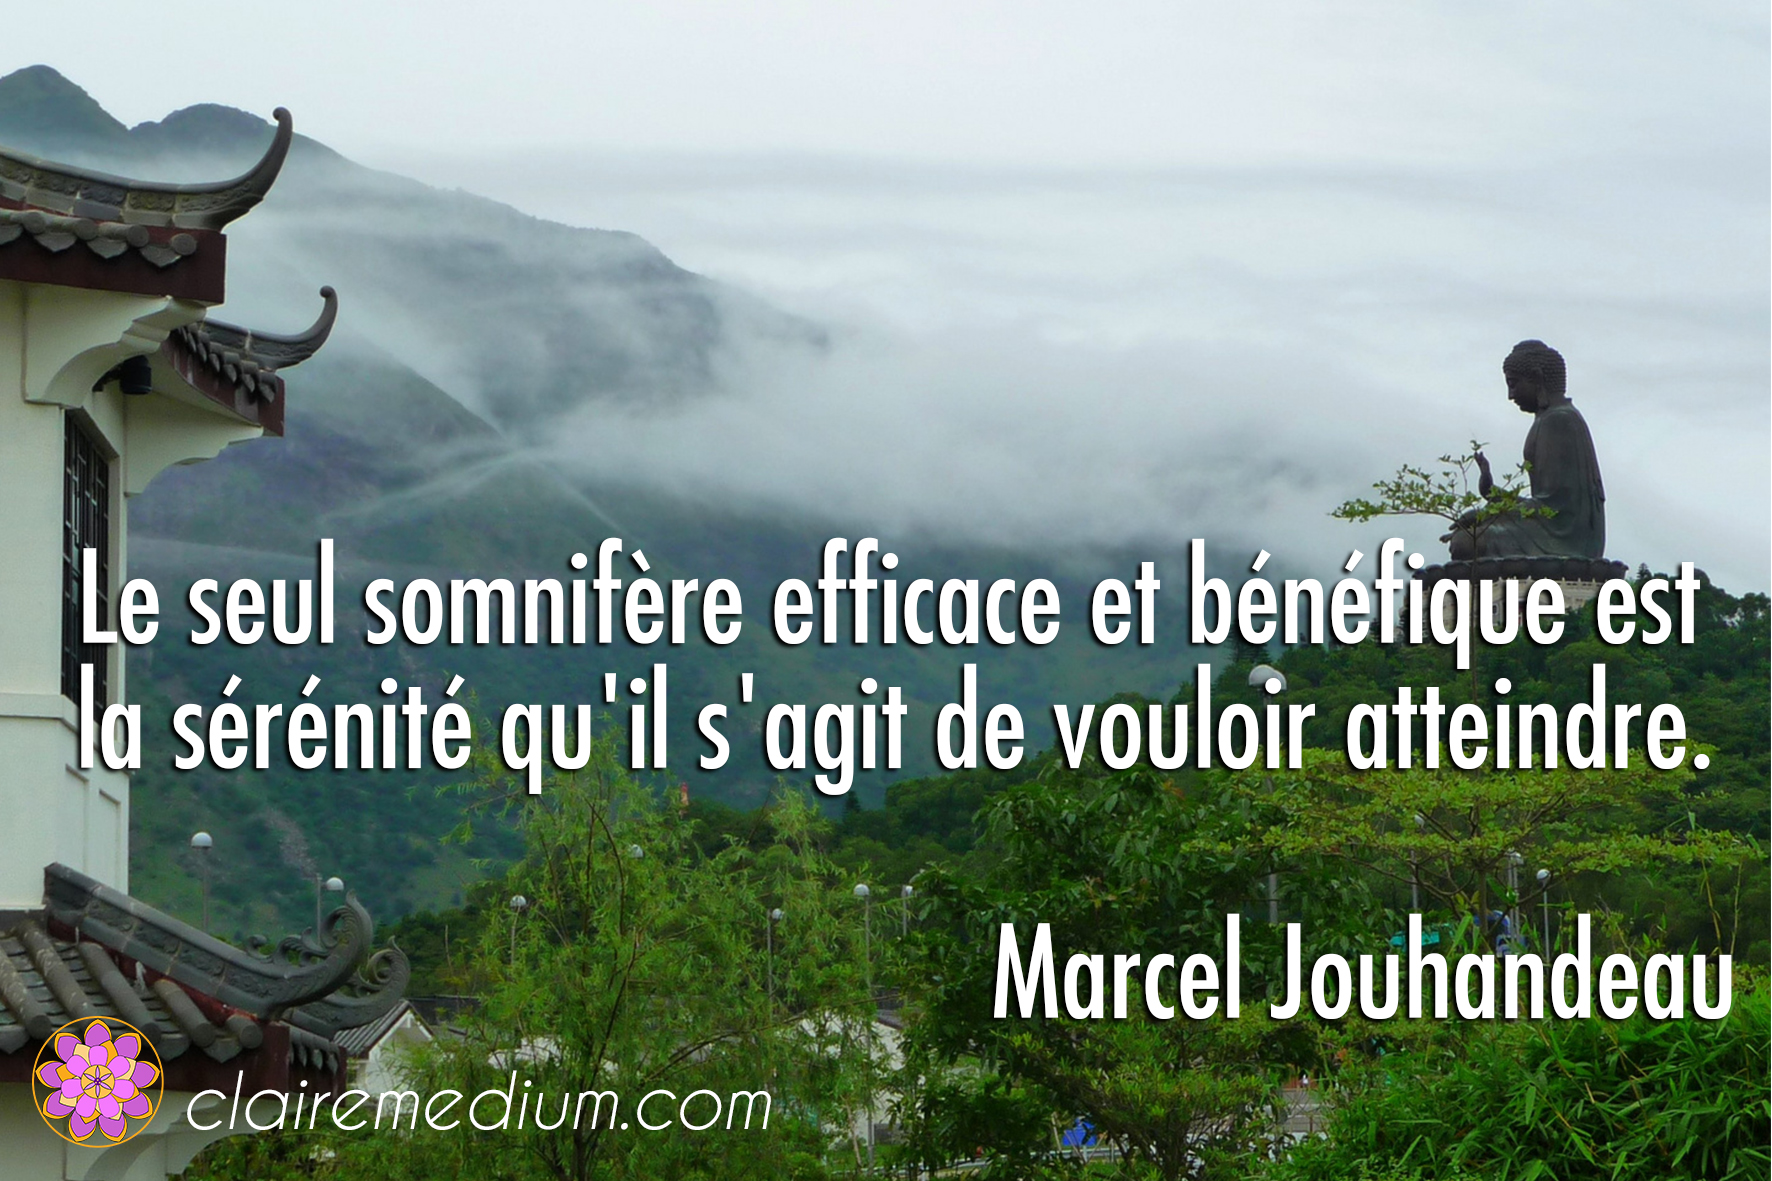 Citation de la semaine de Marcel Jouhandeau